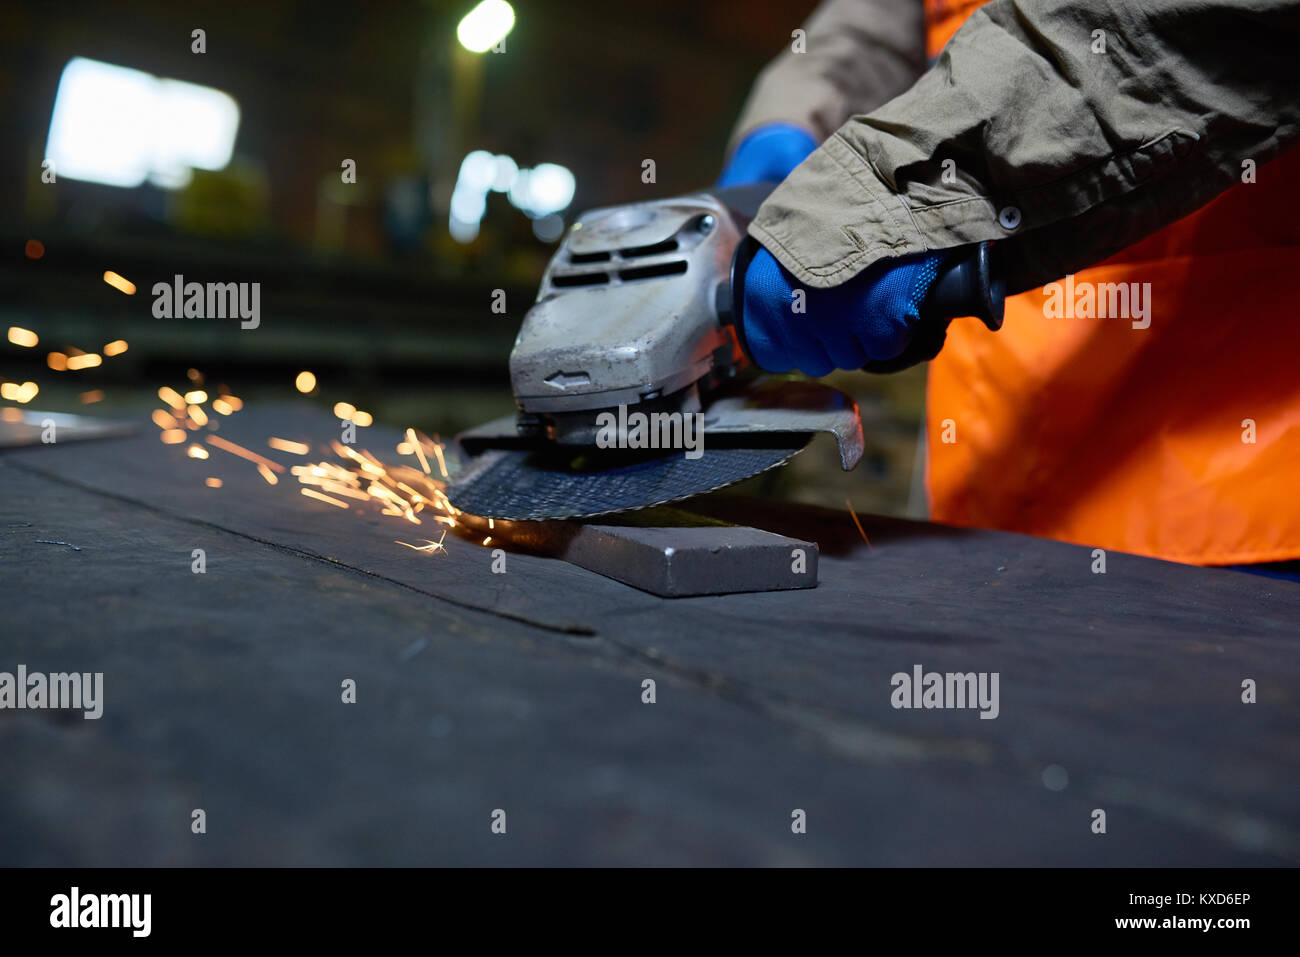 Steel Plant Worker Using Angle Grinder - Stock Image